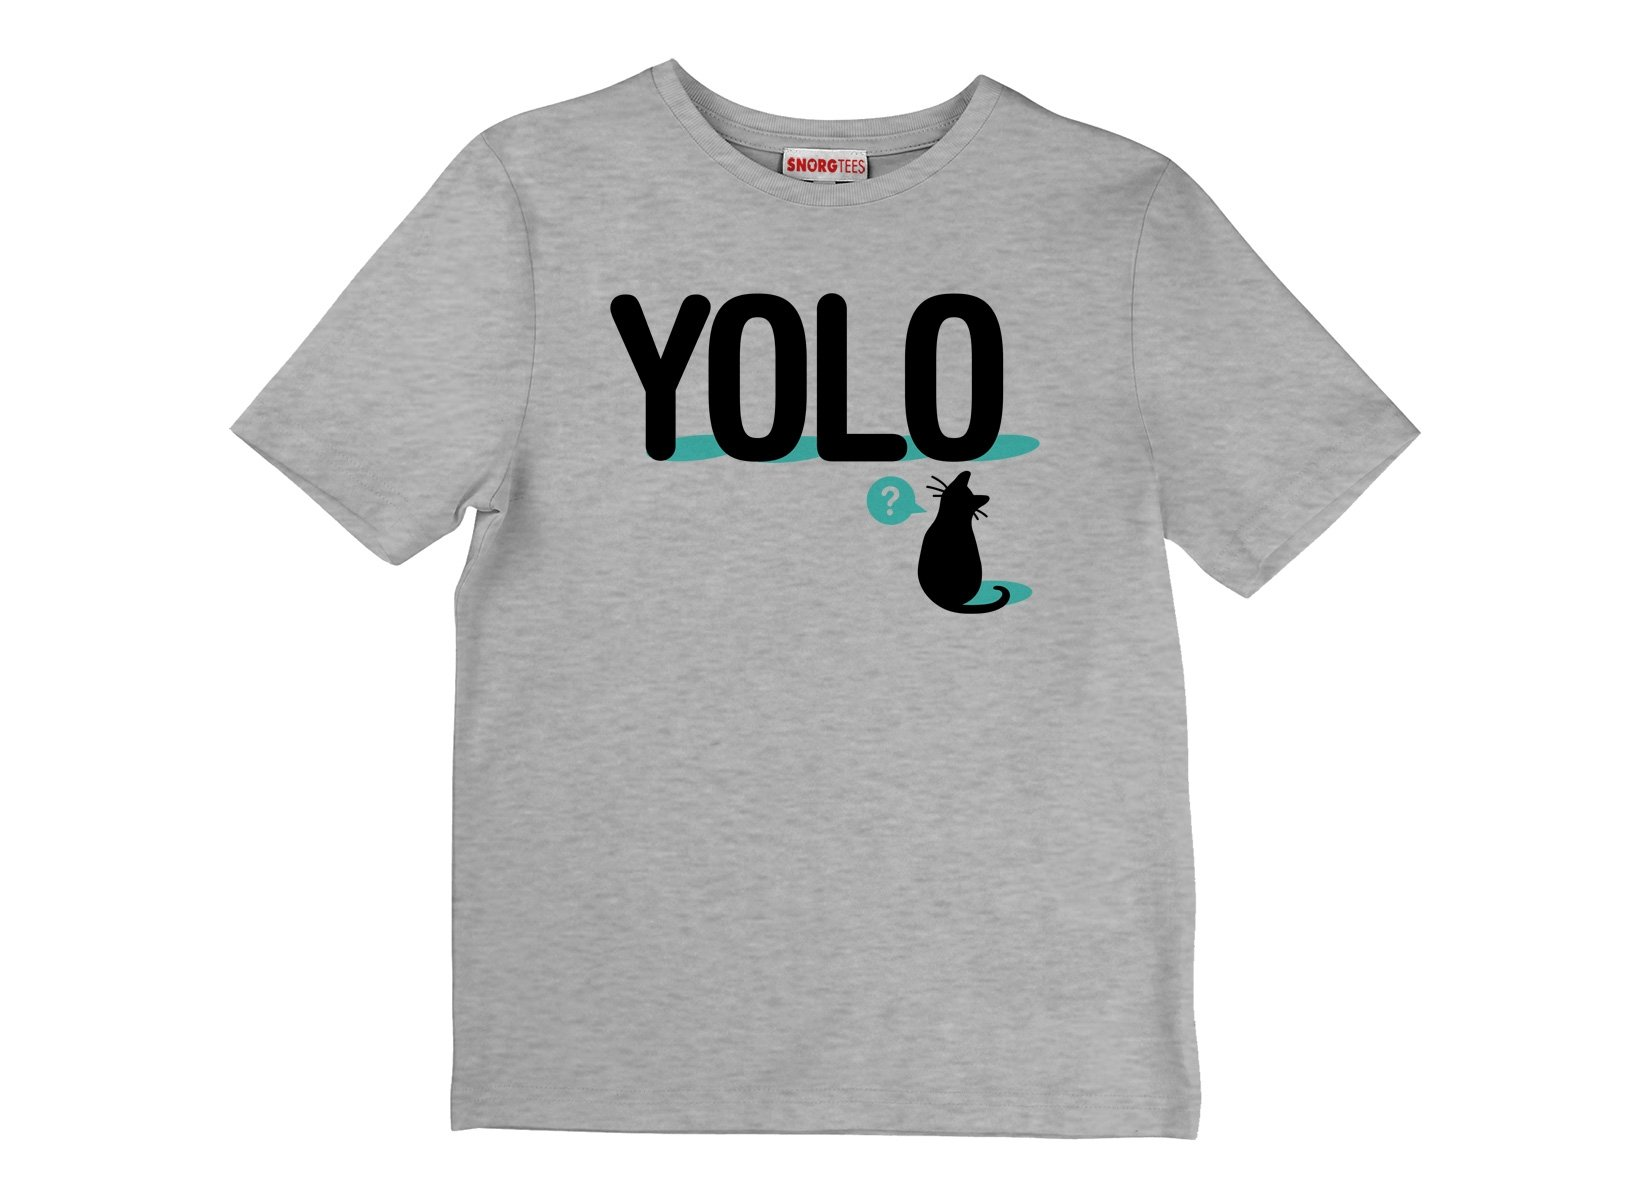 YOLO Cat on Kids T-Shirt